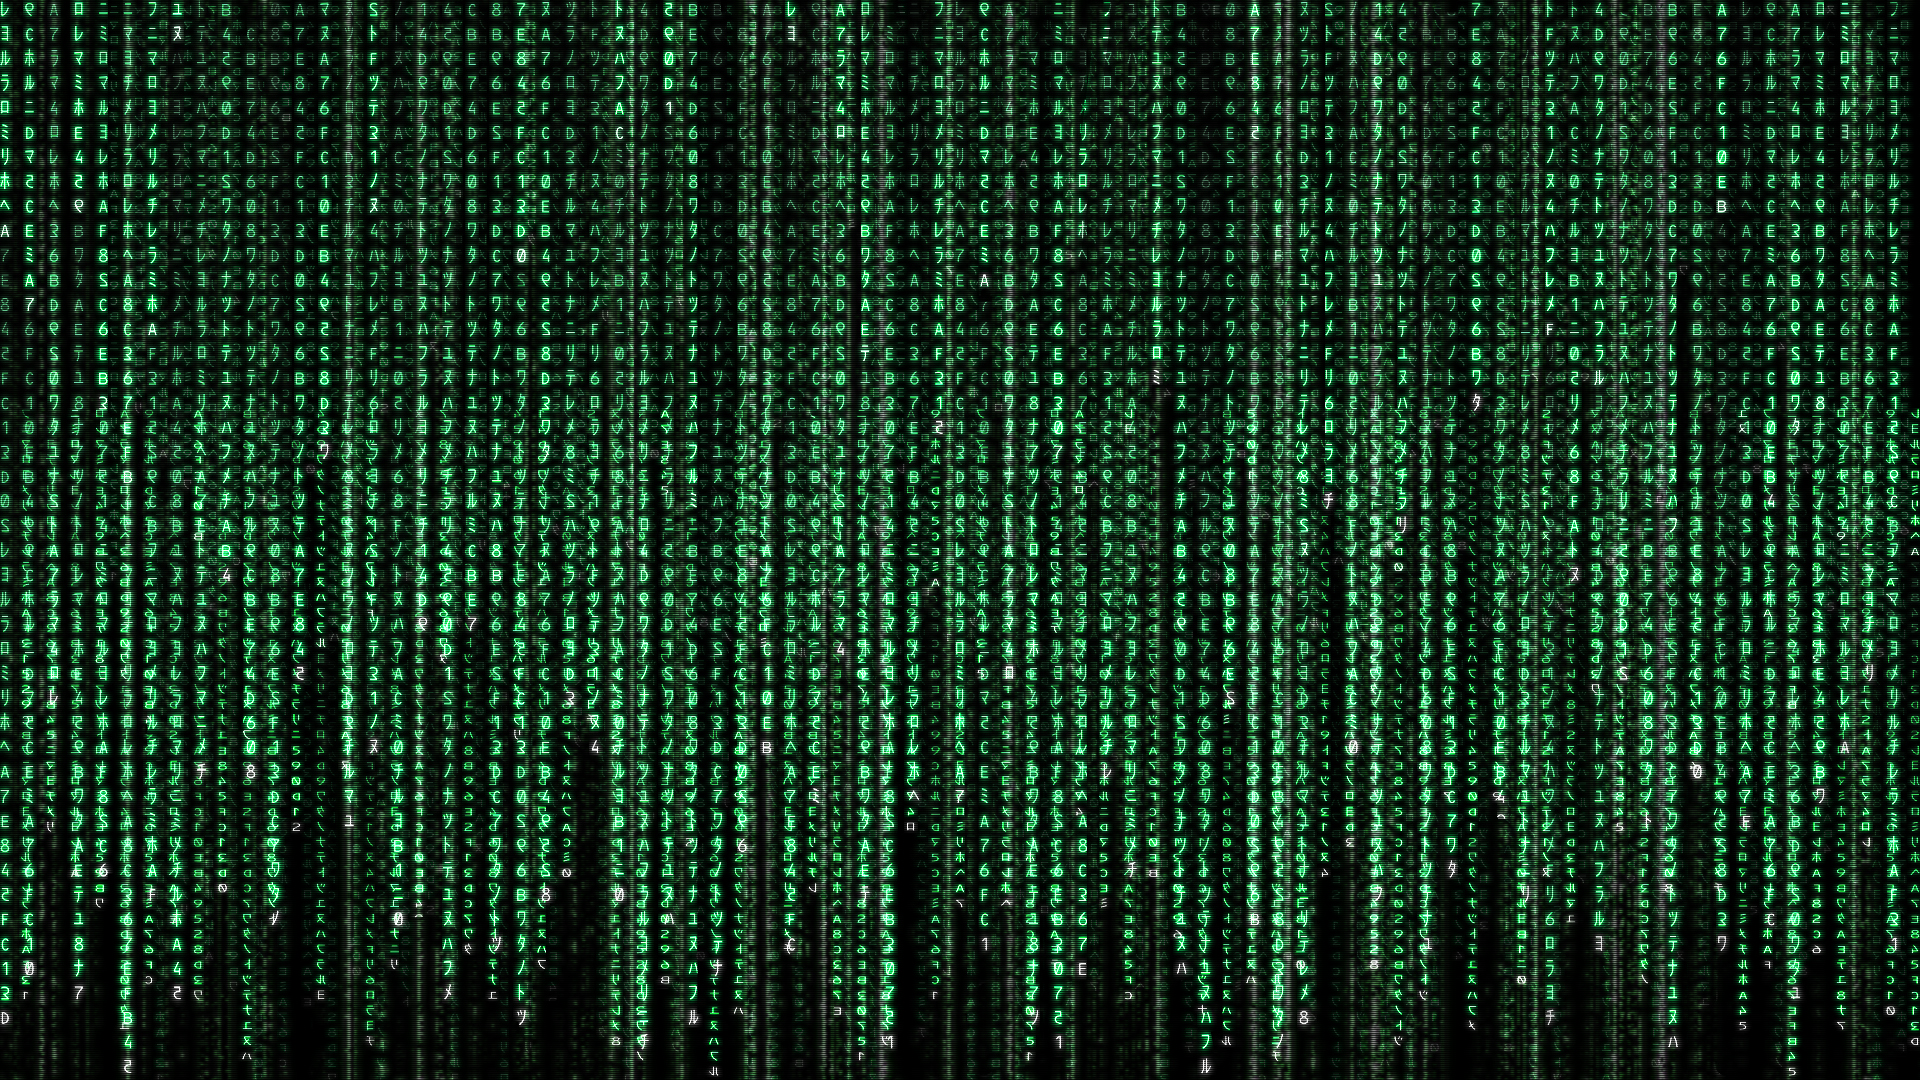 Desktops Vestibule Re Matrix HD wallpapers